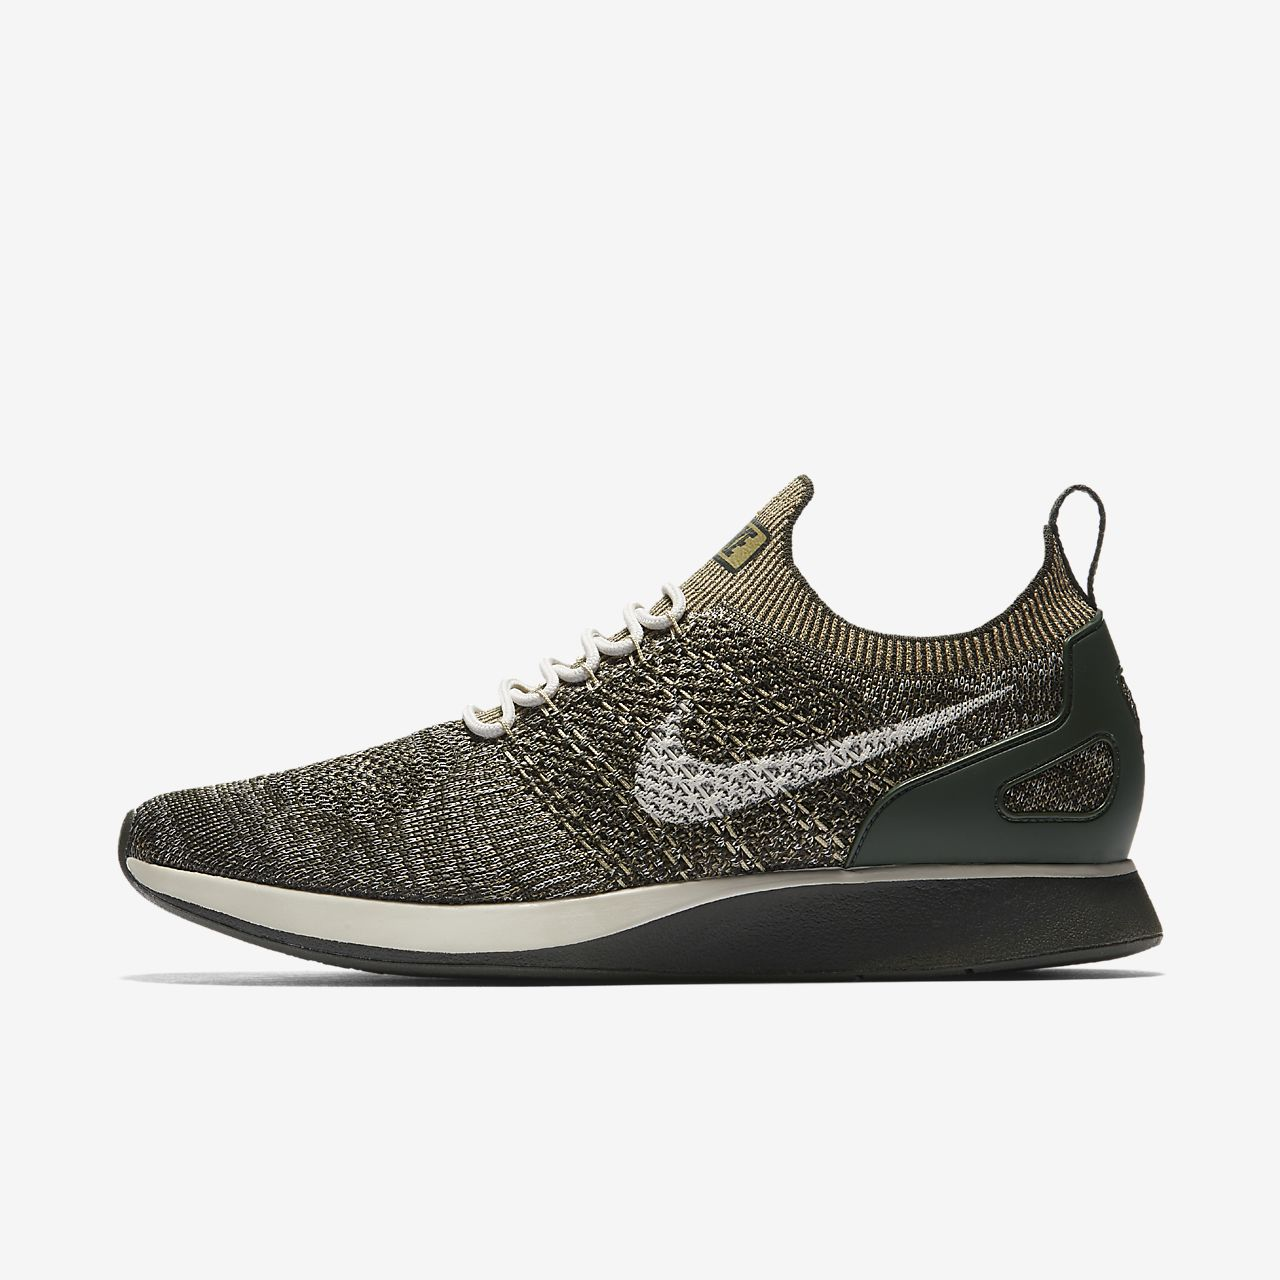 Chaussure pour Homme. Nike Air Zoom Mariah Flyknit Racer